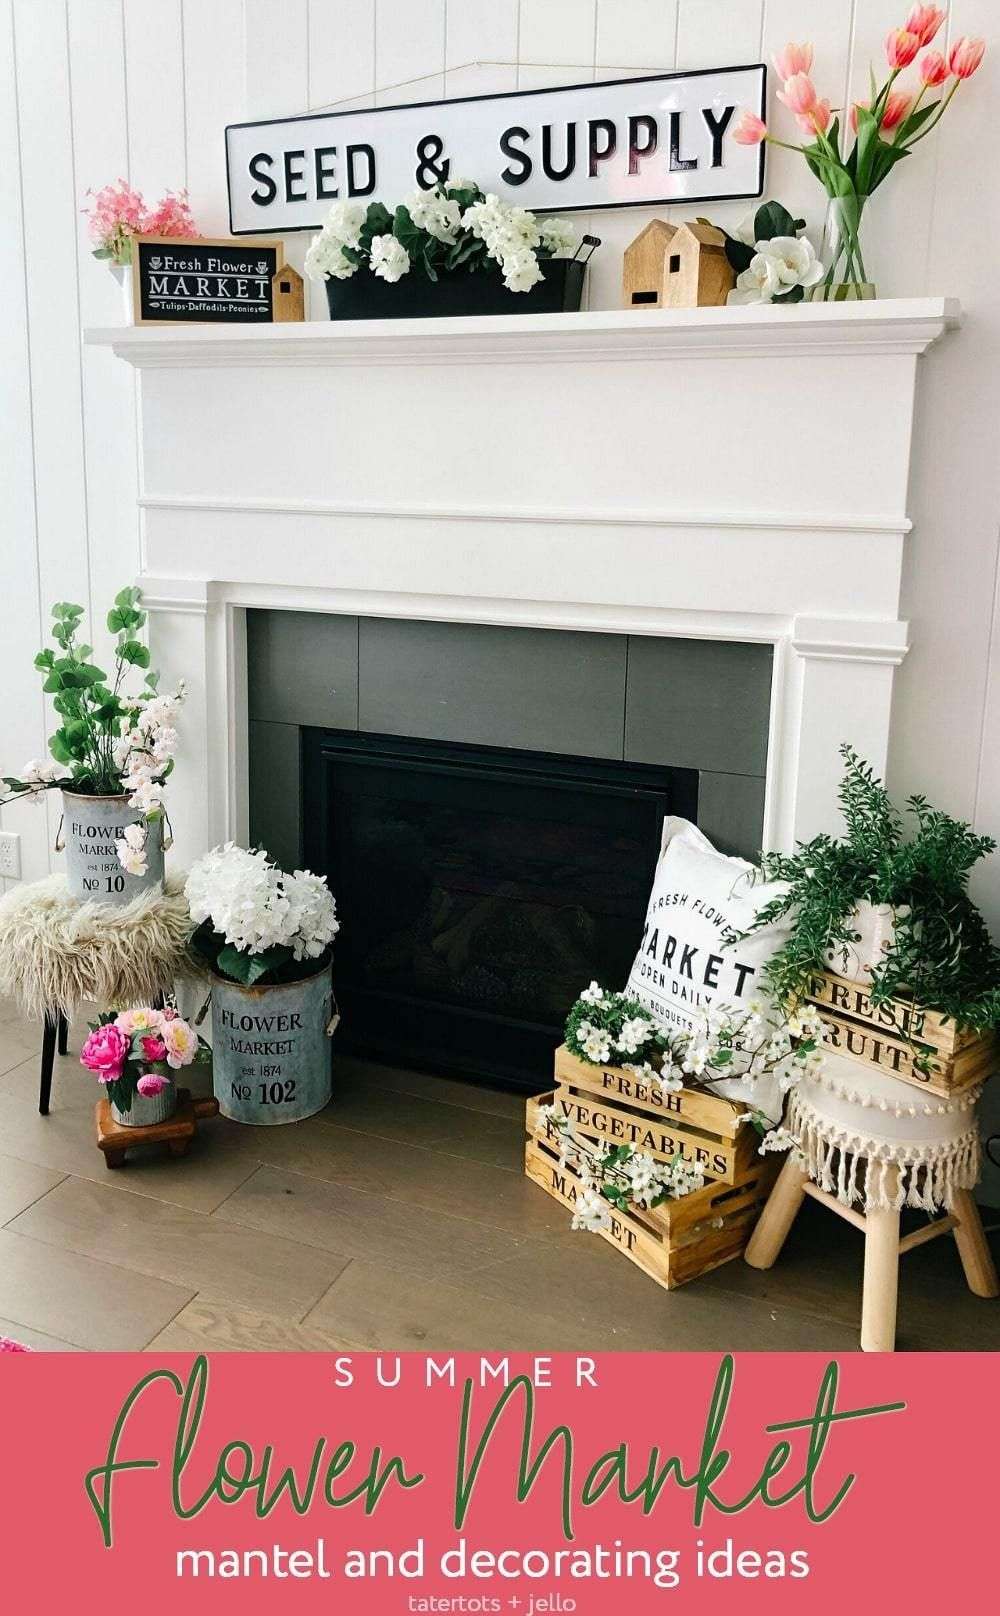 Flower Market Summer Mantel and Decorating Ideas1 images